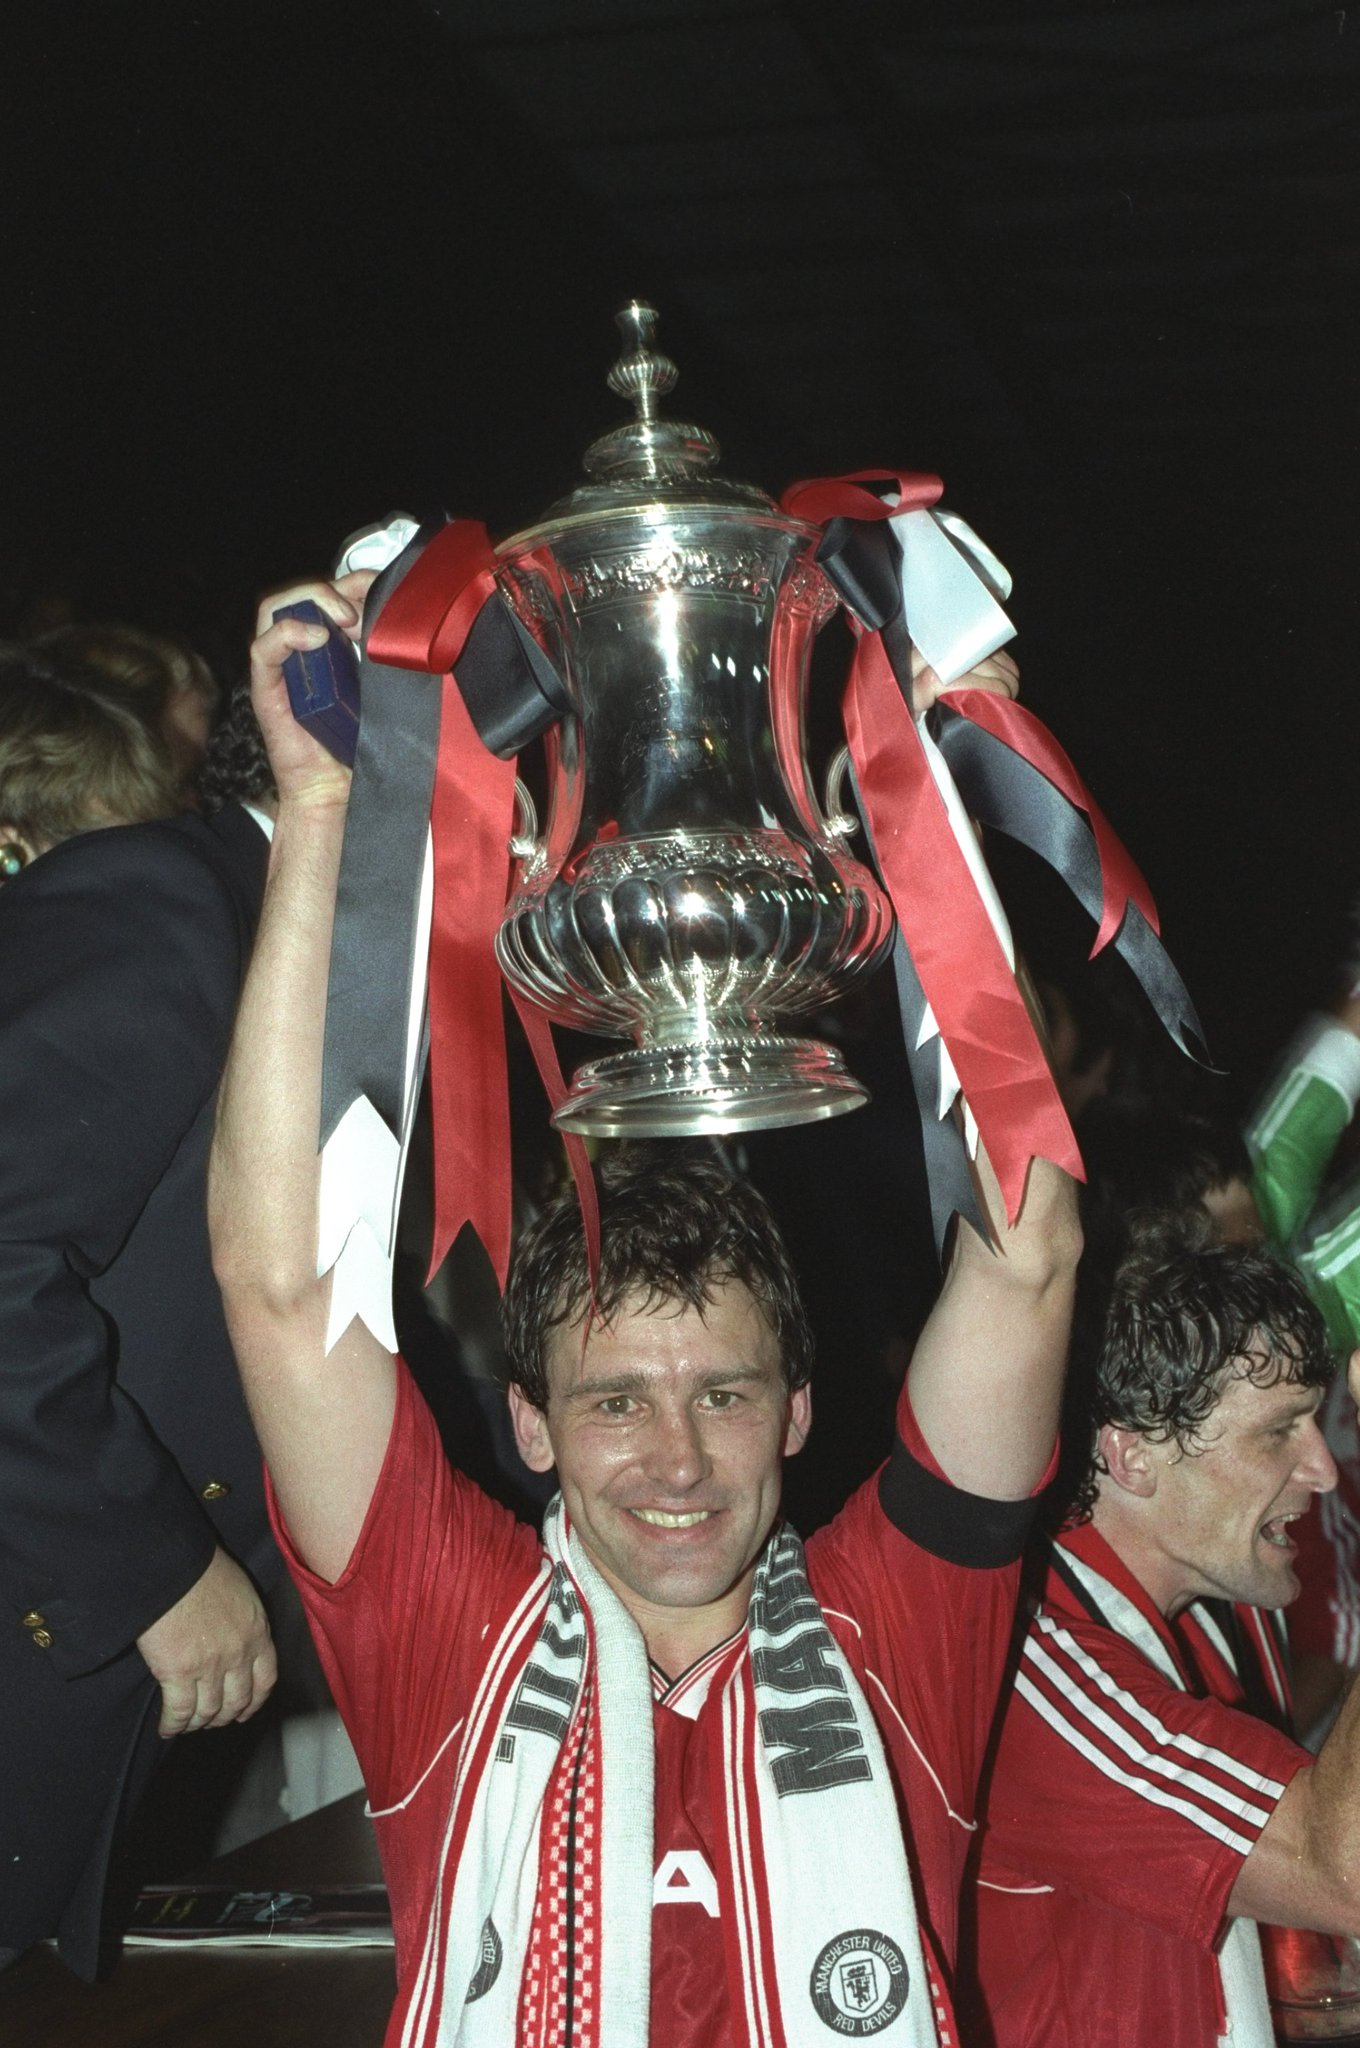 We wish a happy 60th birthday to legend Bryan Robson.